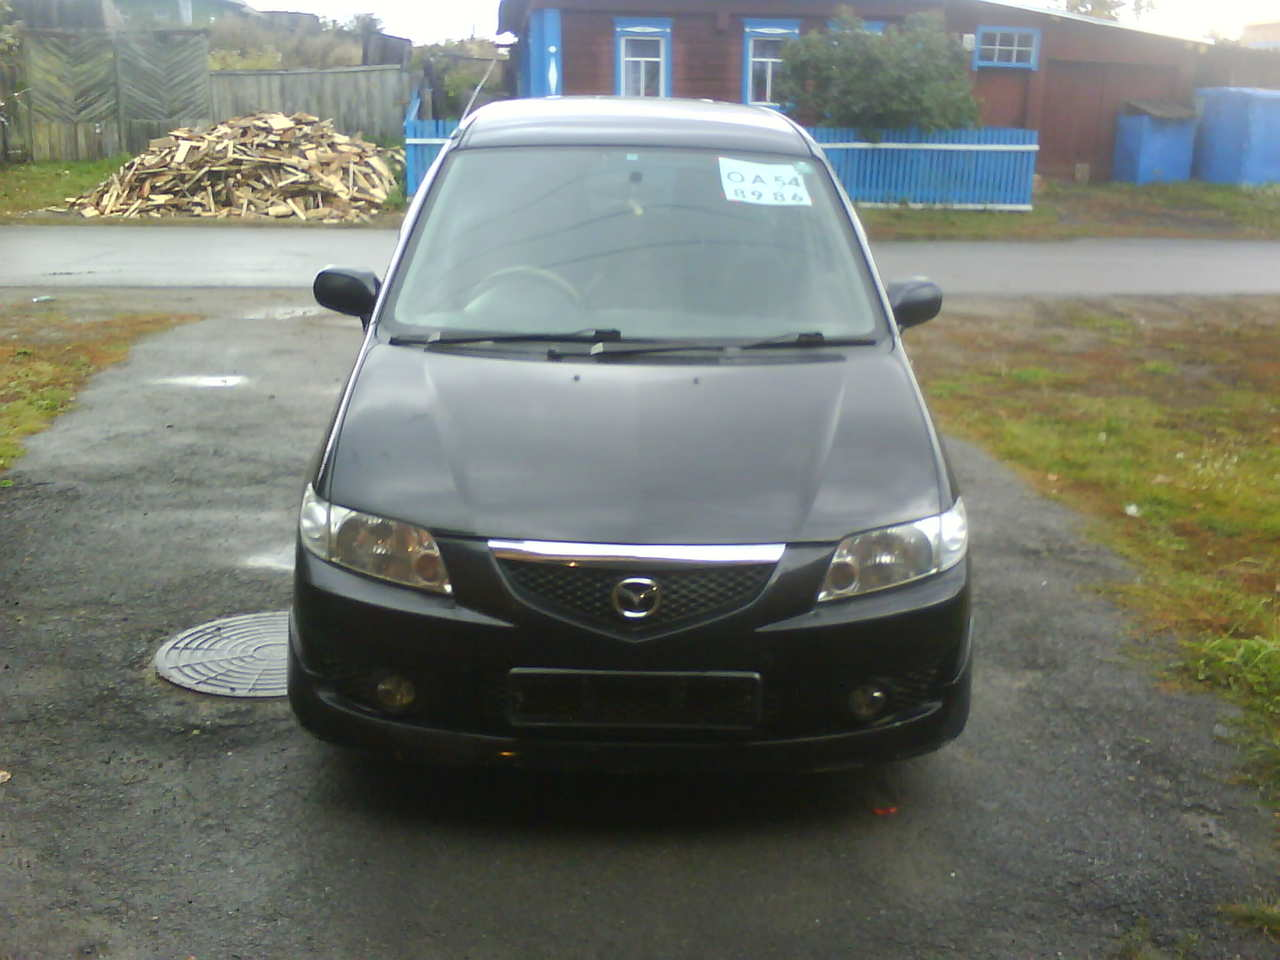 2001 mazda premacy pics 1 8 gasoline ff automatic for sale. Black Bedroom Furniture Sets. Home Design Ideas